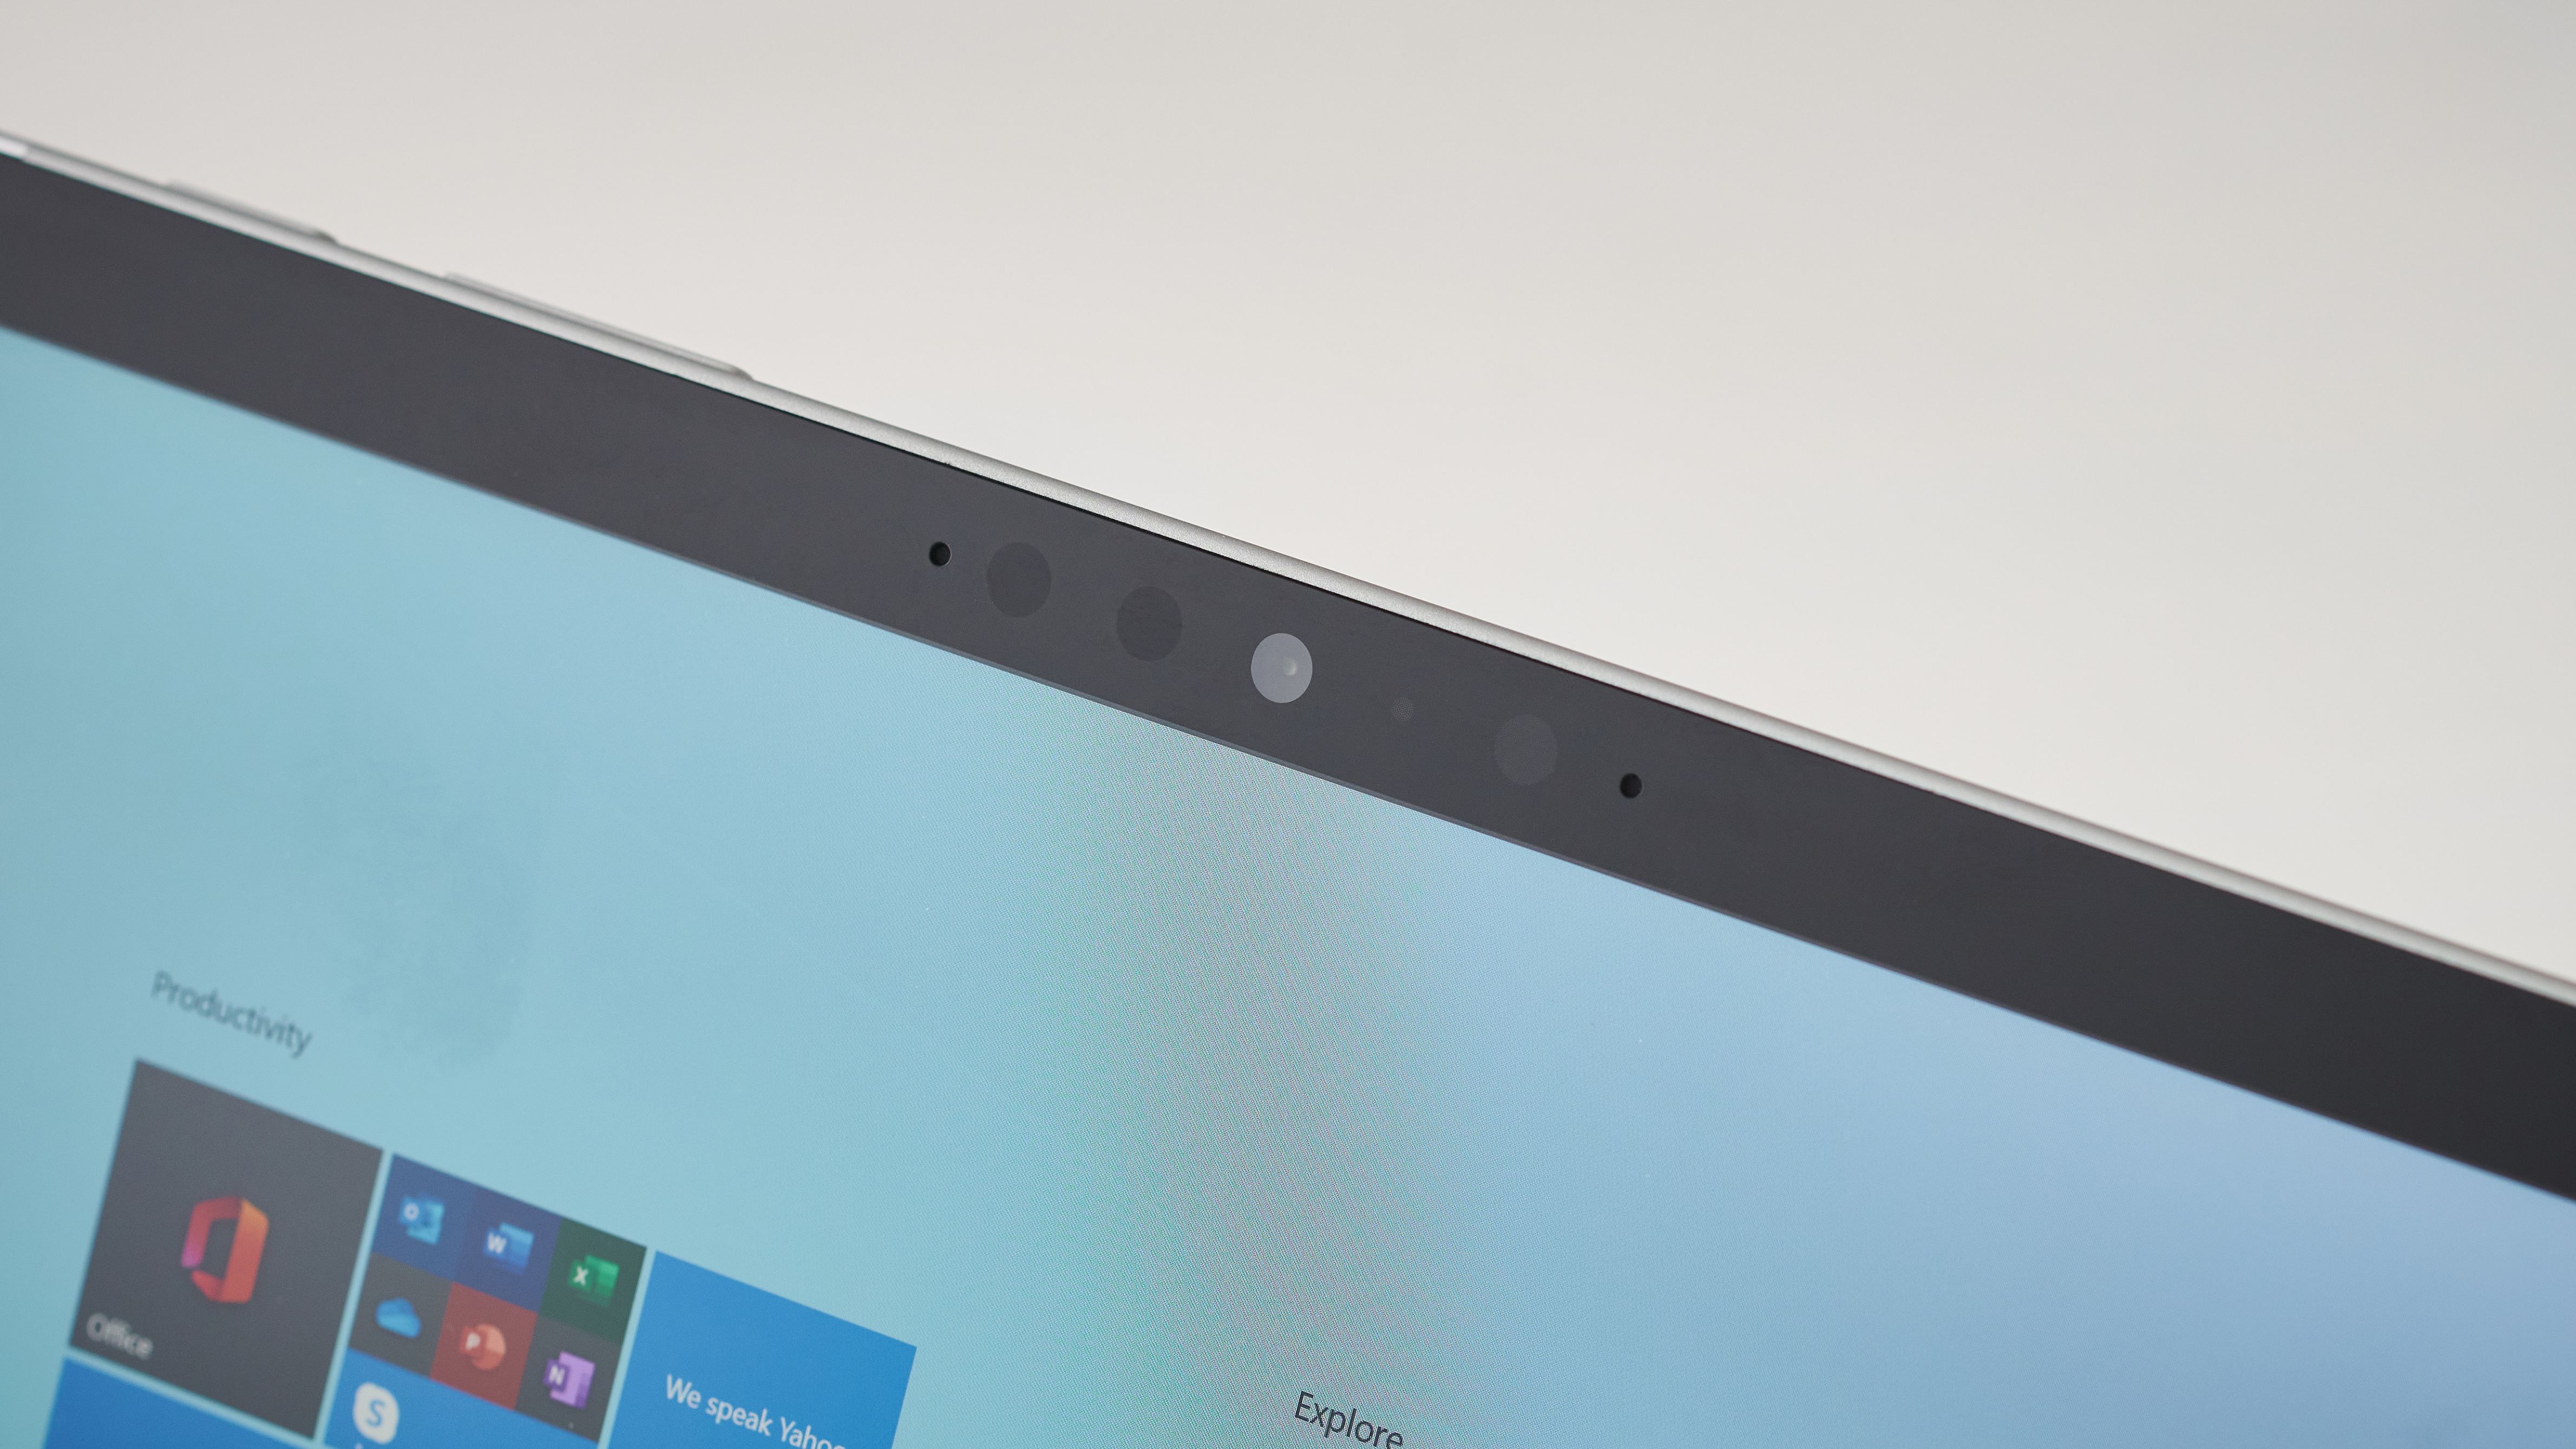 Microsoft Surface Go 2's camera and screen bezels